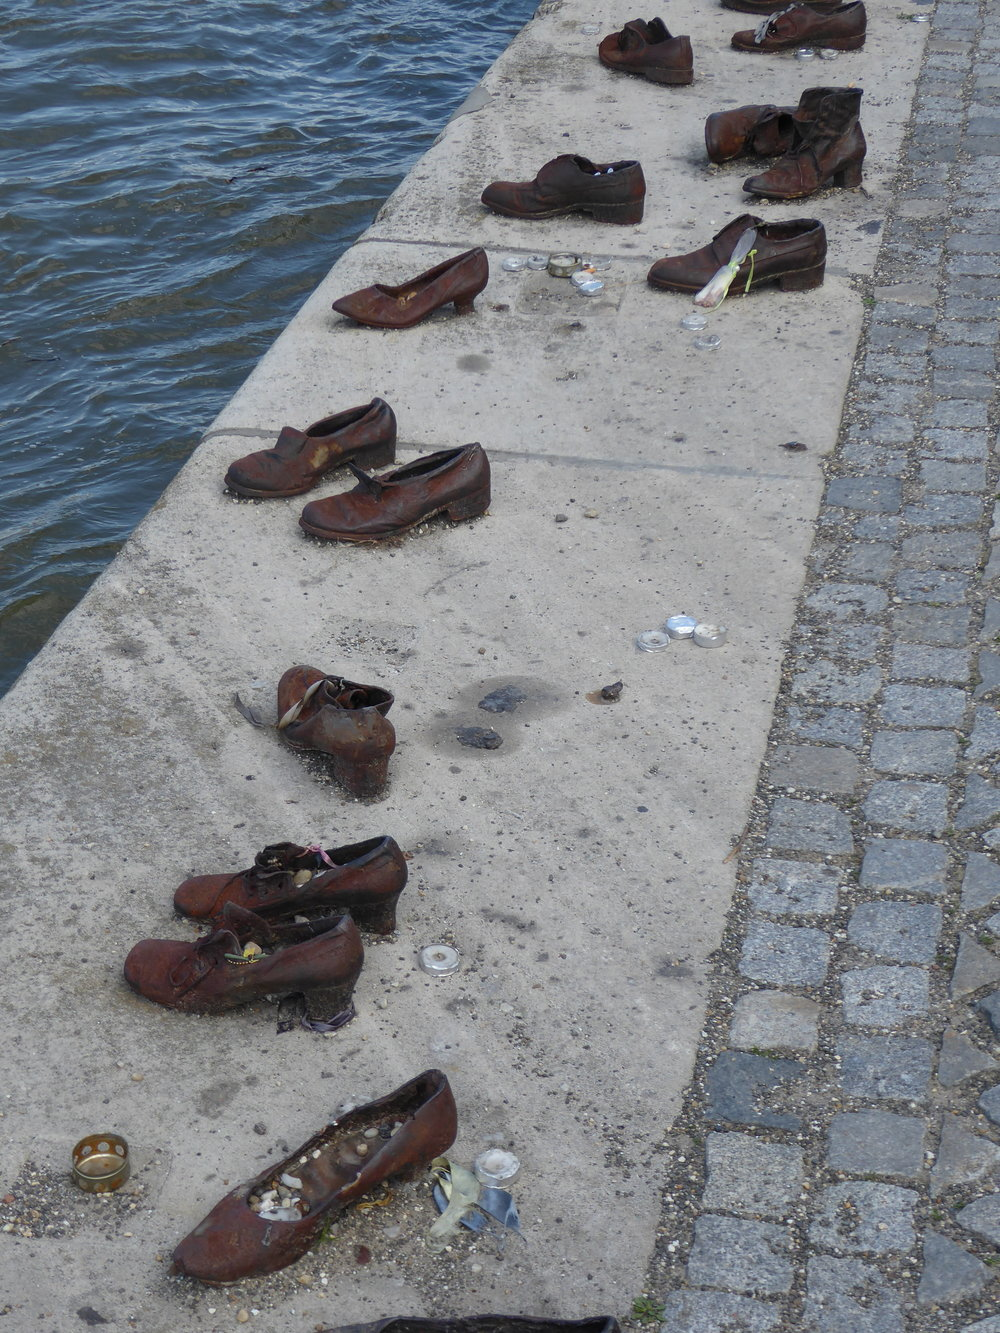 Reminders of the holocaust are seen throughout the city. Here along the Danube are bronzed shoes of the Jews who were taken to this spot on the water's edge, shot, and then thrown into the river.